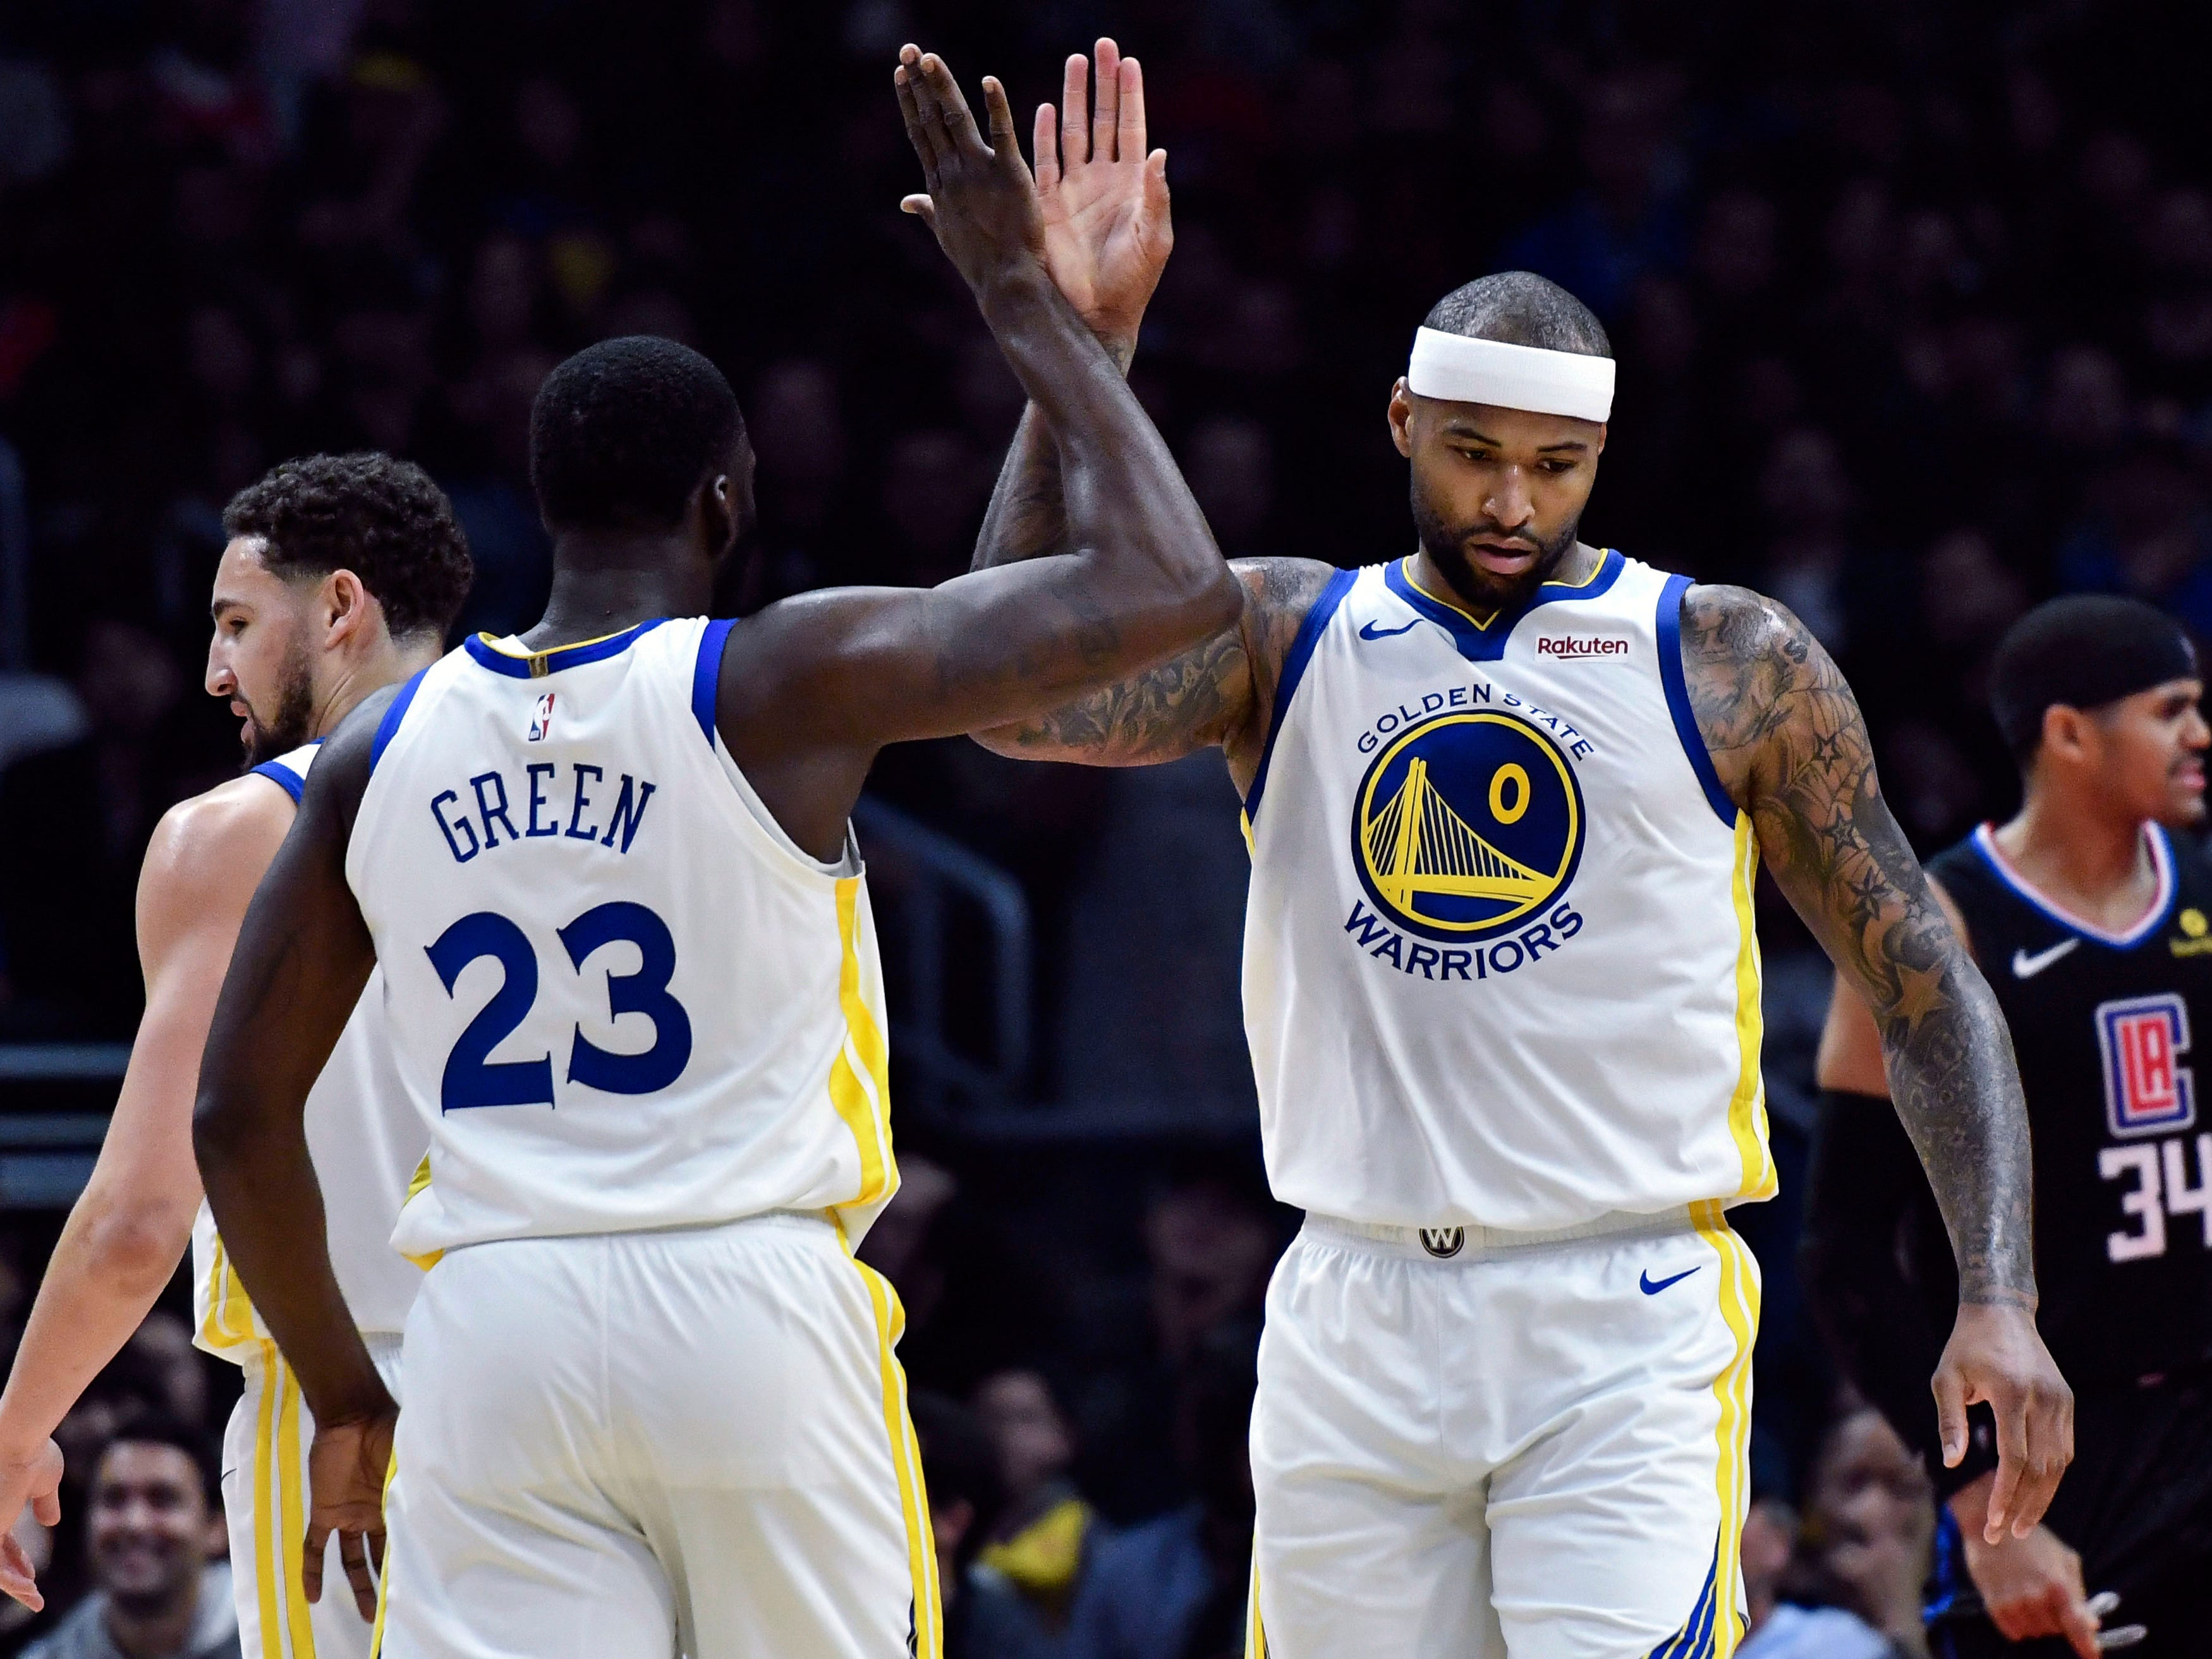 Jan. 18: Warriors center DeMarcus Cousins (0) celebrates a bucket with Draymond Green (23) during the first half against the Clippers in Los Angeles. Cousins made his long-awaited season debut for Golden State after recovering from a torn Achilles.